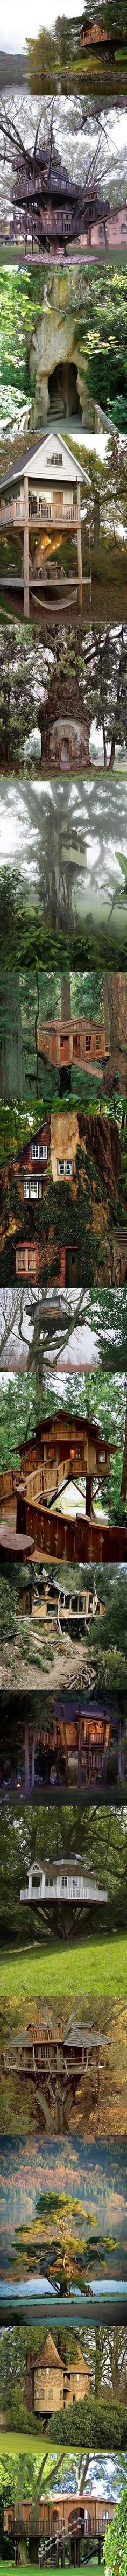 Really Awesome Treehouses | Little White LionLittle White Lion